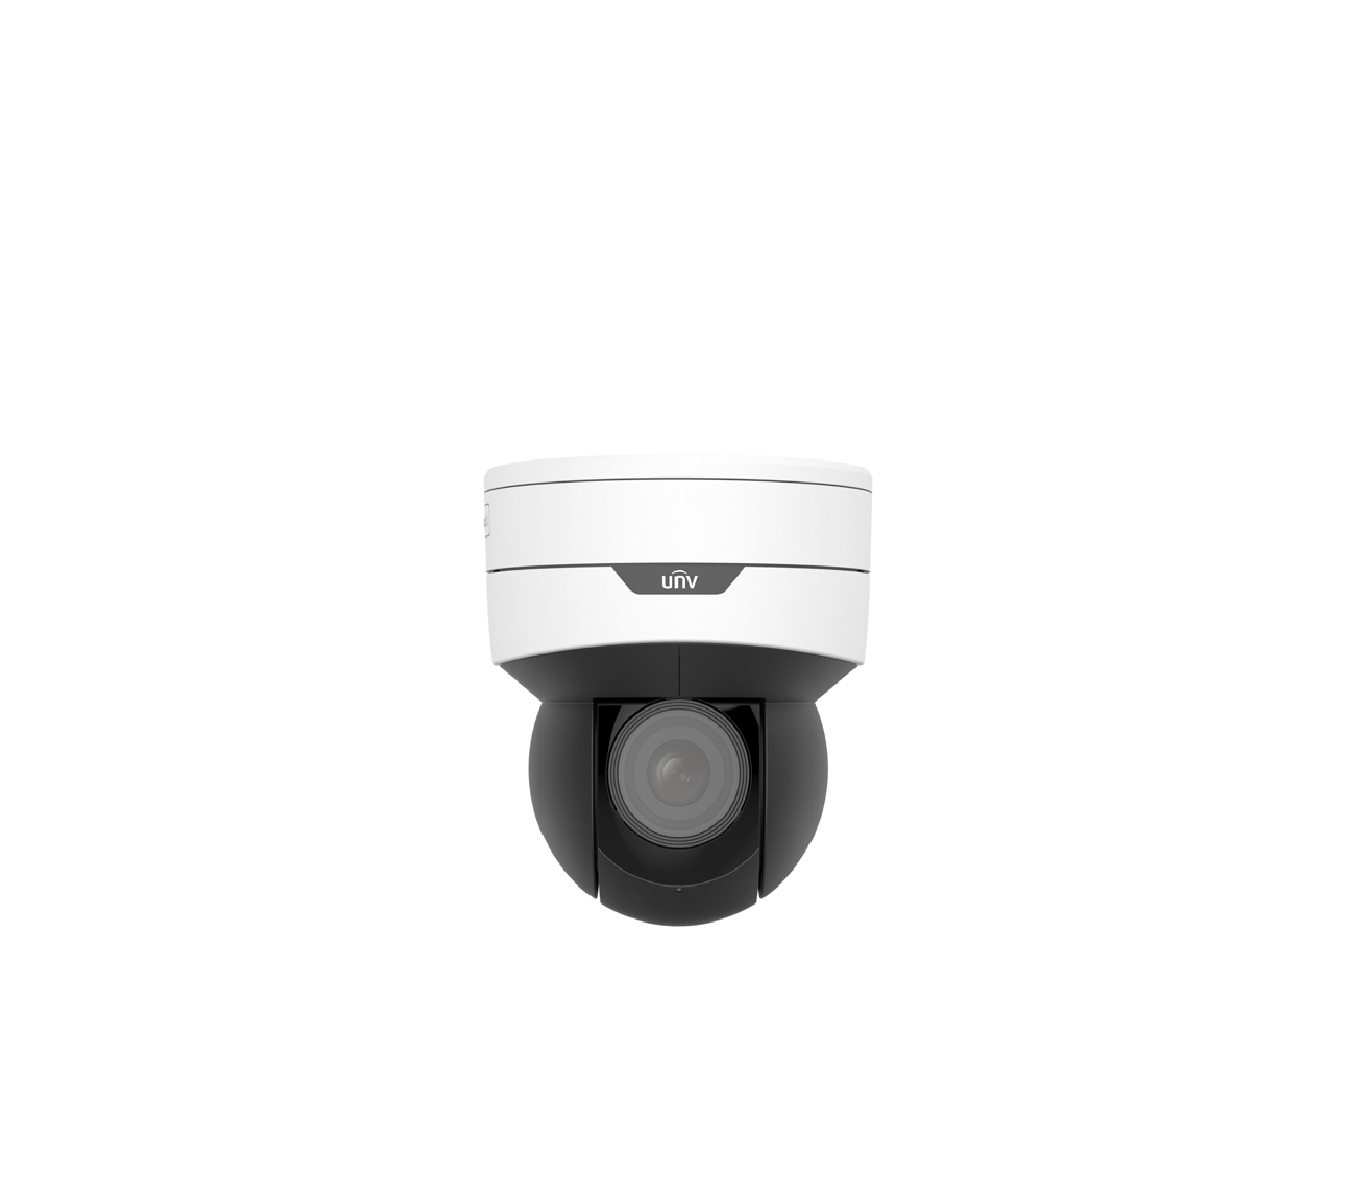 Camera IP Mini SpeedDome 2MPIPC6412LR3-X5P